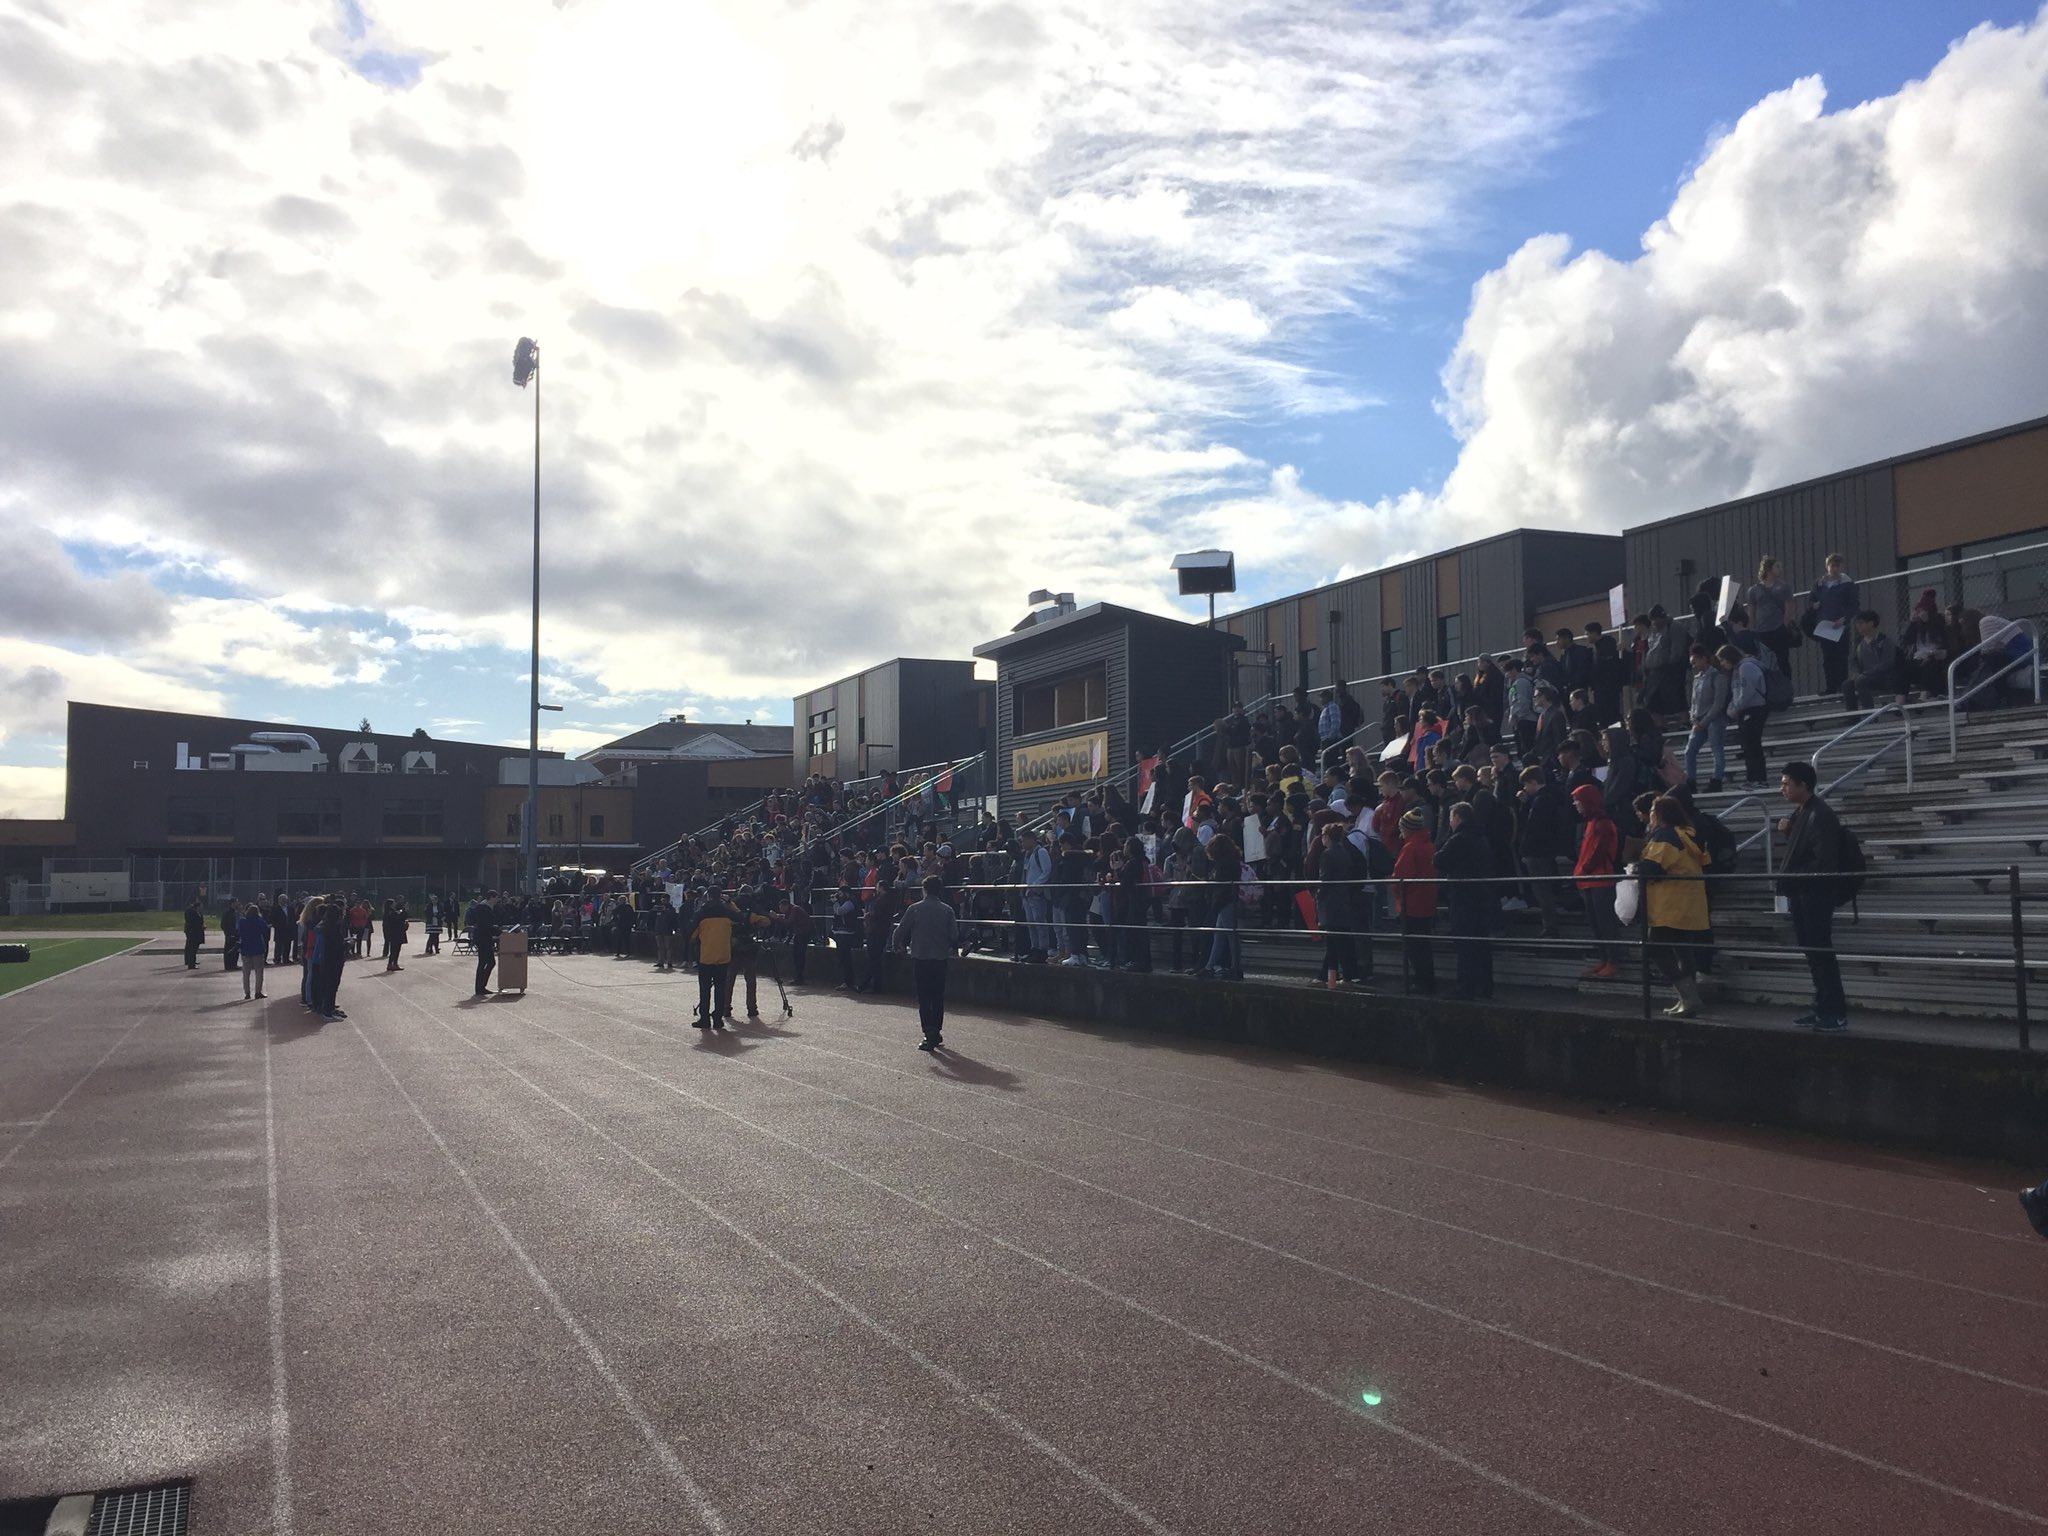 Roosevelt High School is participating in a nationwide walkout to protest gun violence on March 14, 2018. KATU photo